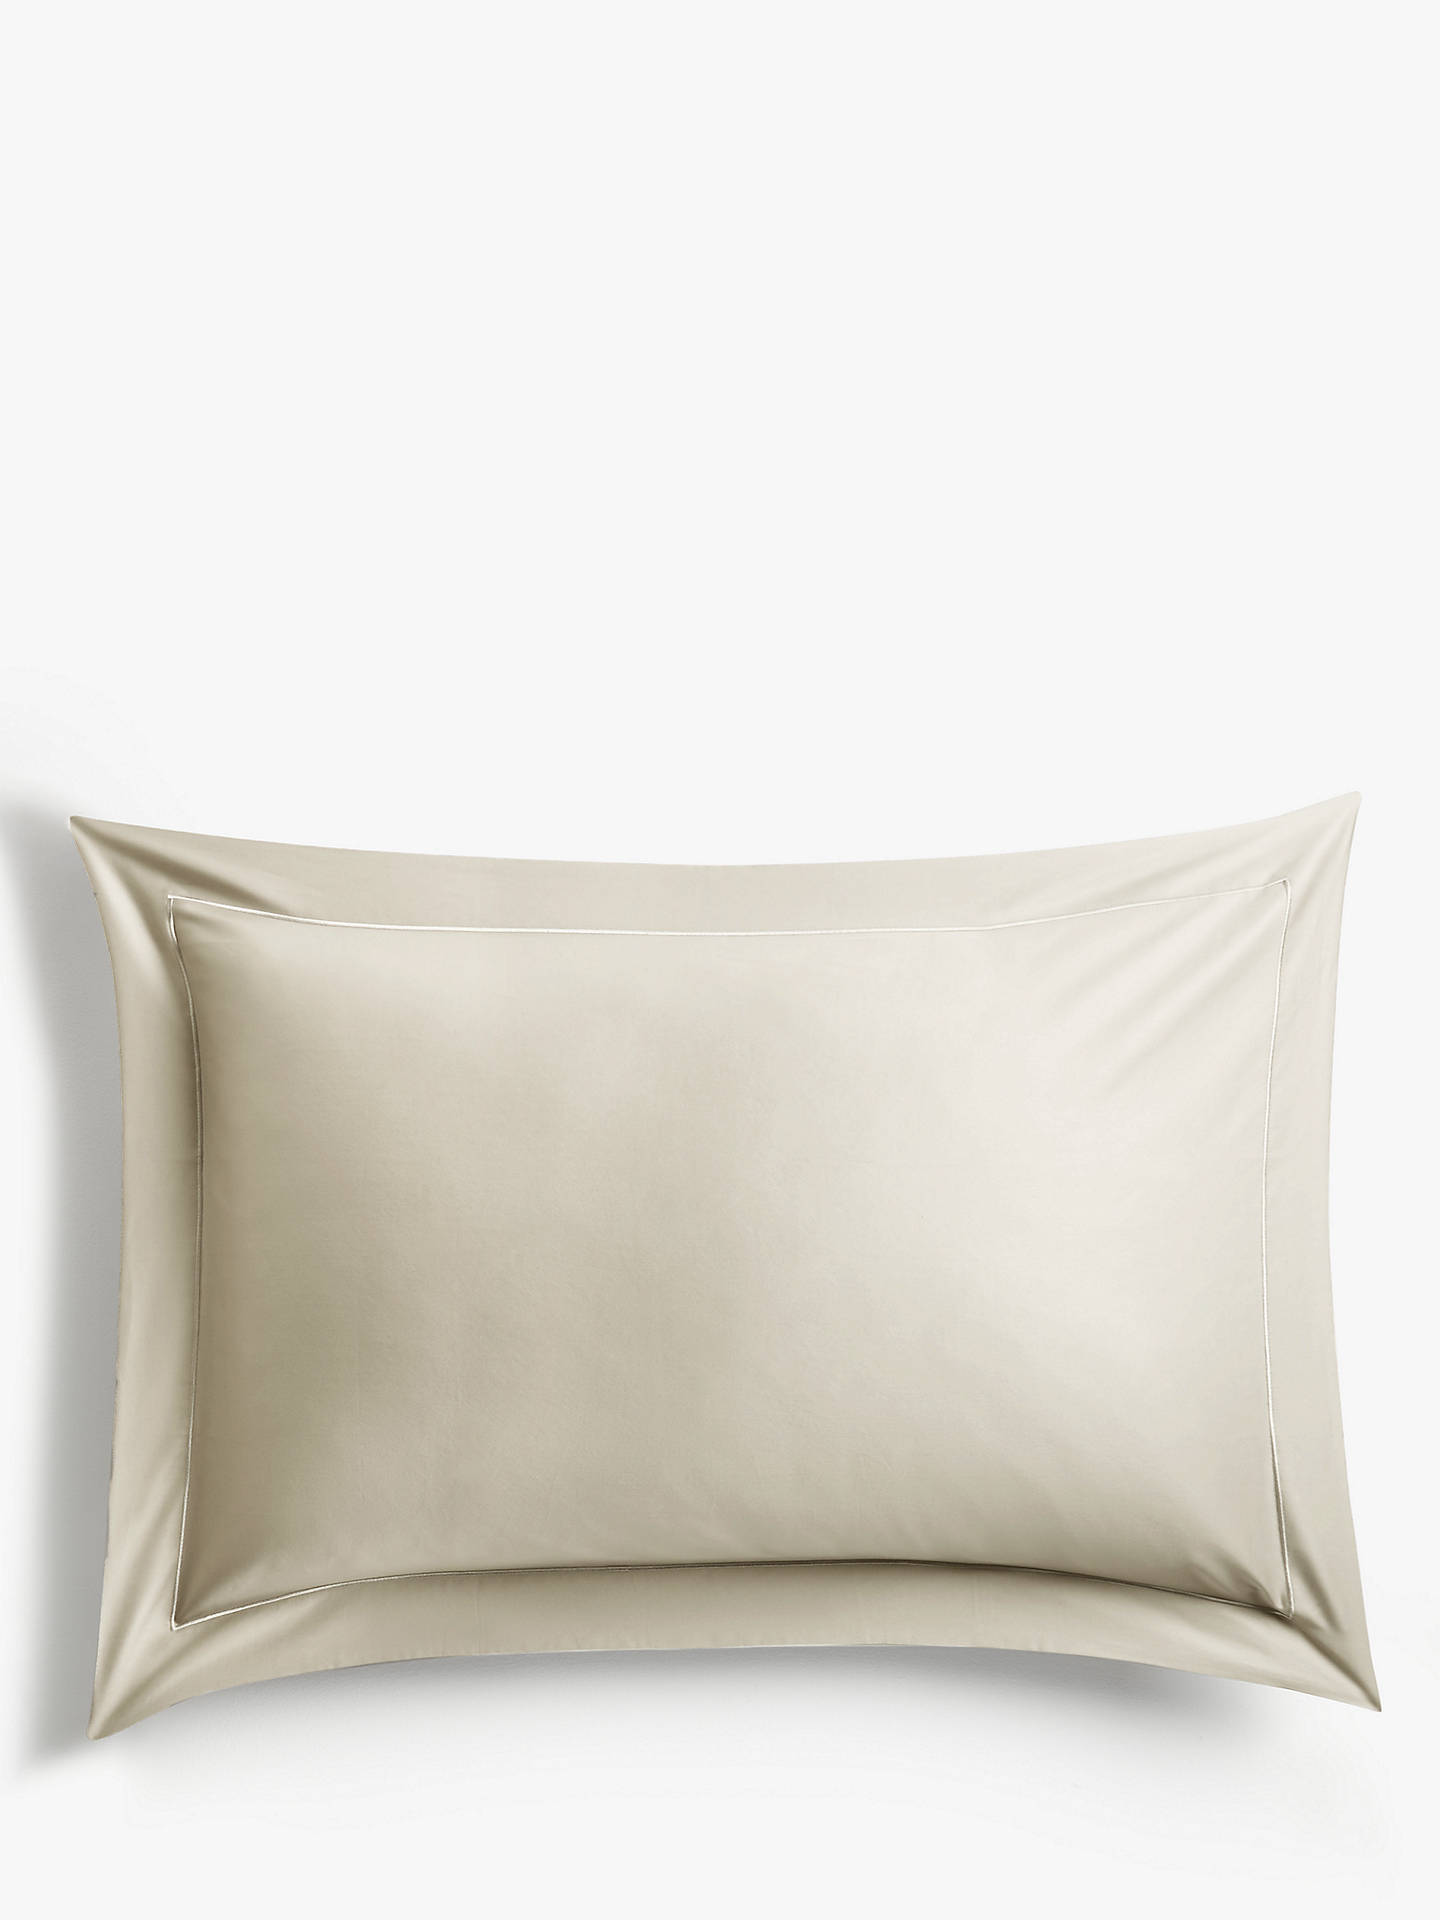 Buy John Lewis & Partners 400 Thread Count Soft & Silky Egyptian Cotton Standard Pillowcase, Soft Latte Online at johnlewis.com